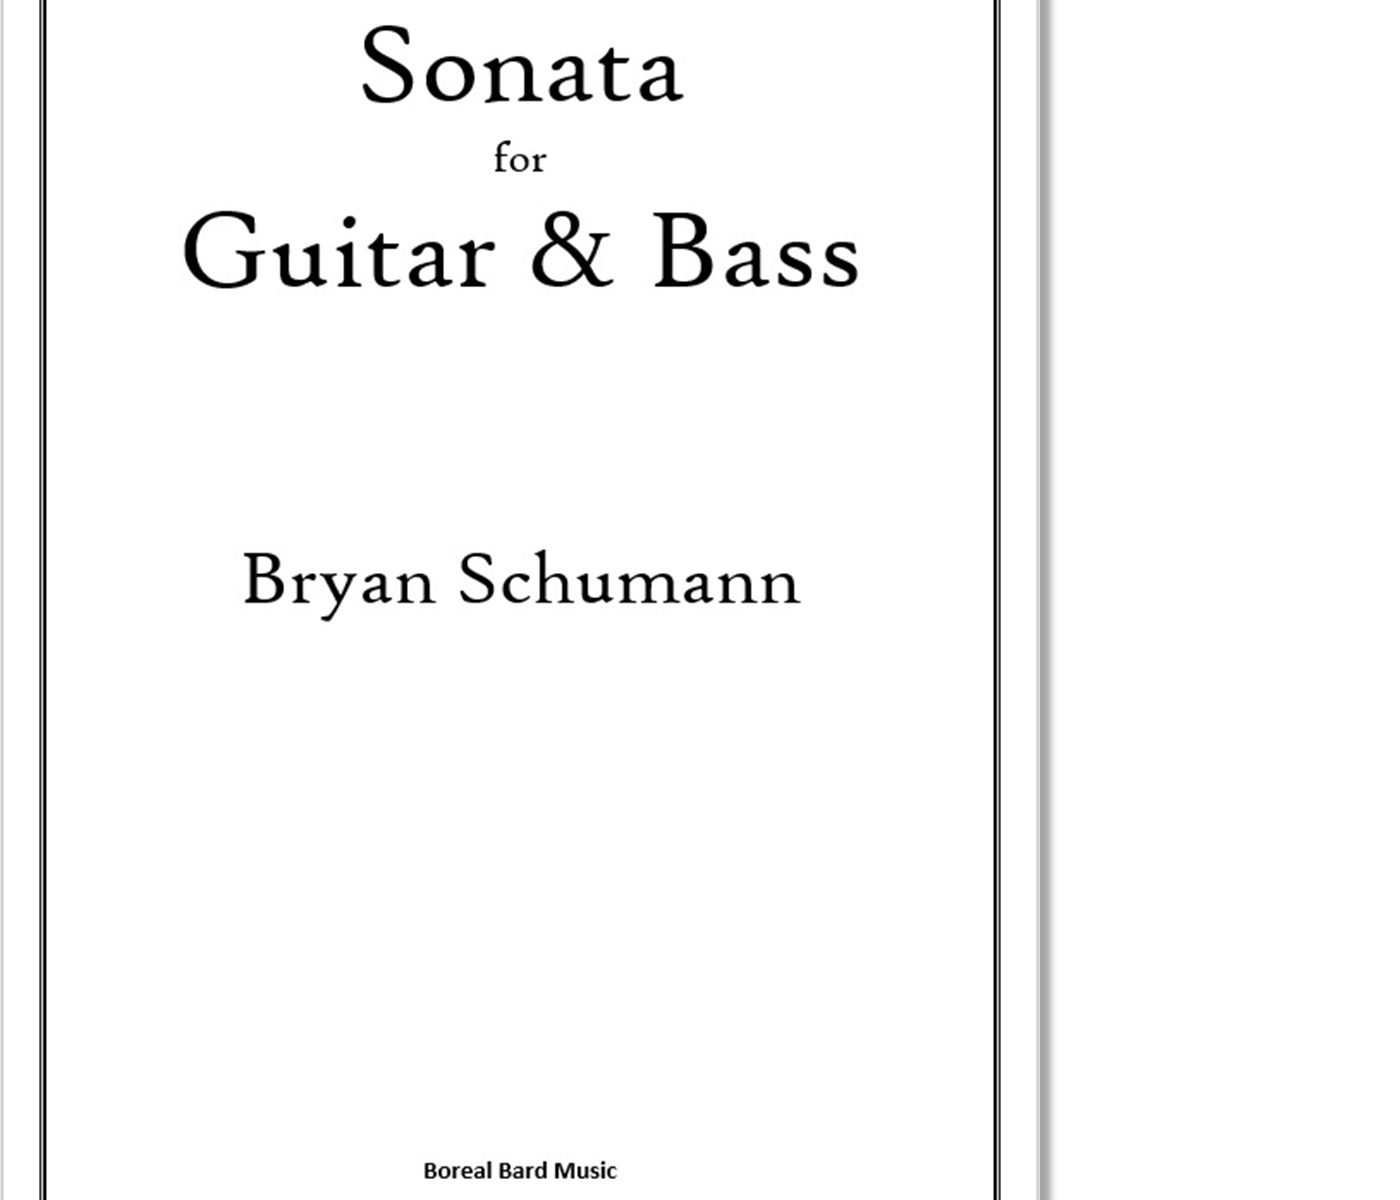 Sonata for Guitar & Bass - Sheet Music Product Image